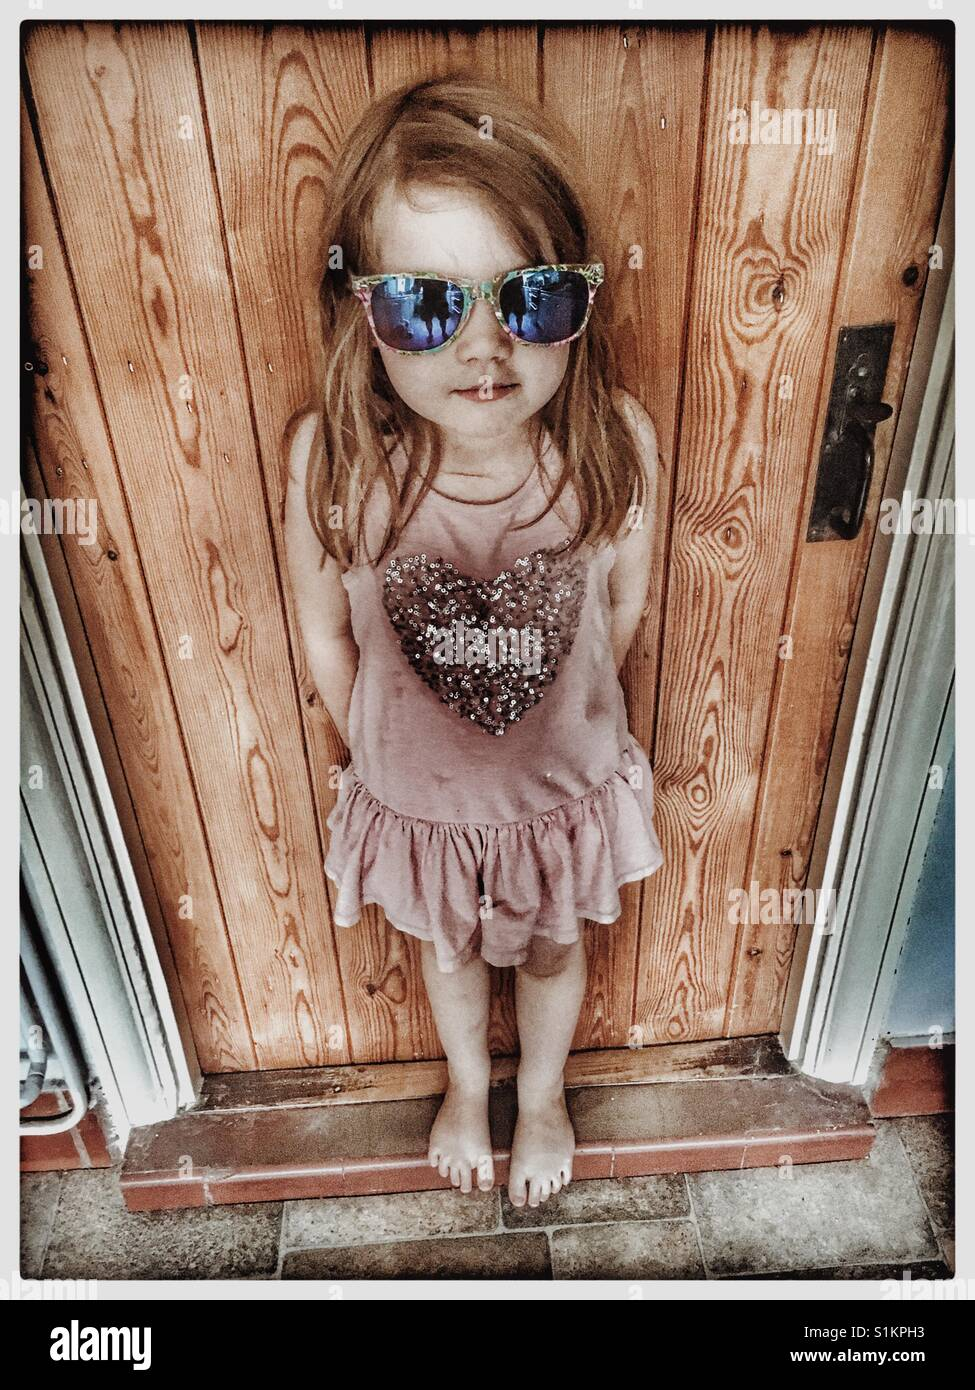 Red haired 5 year old girl in sunglasses. - Stock Image